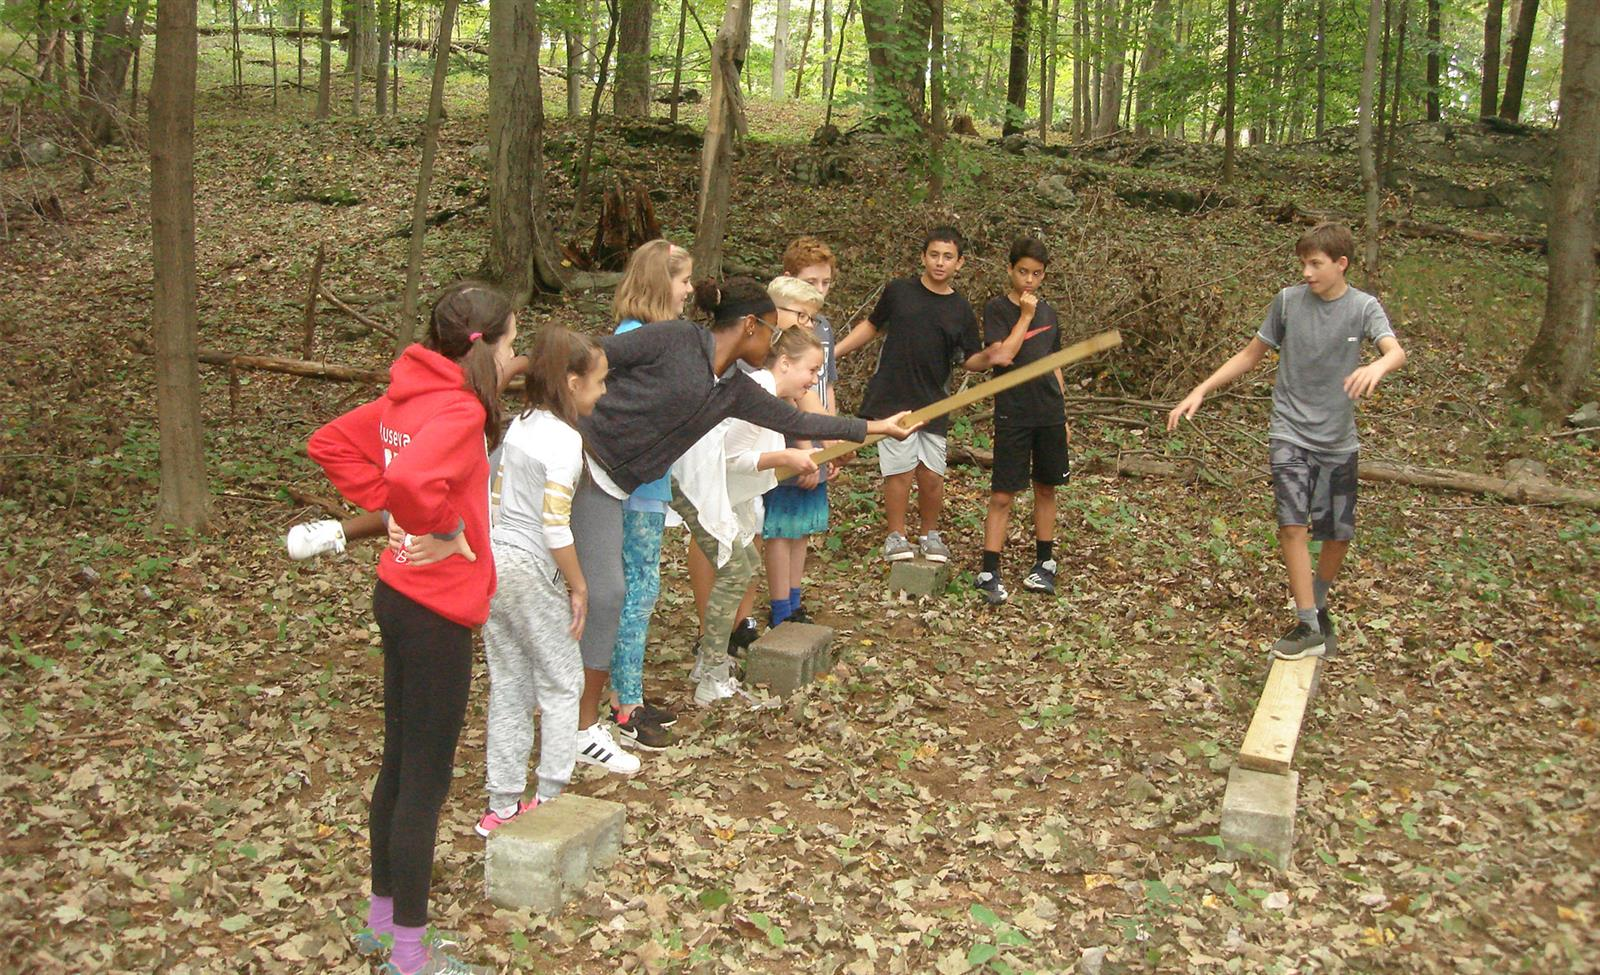 Seventh-Graders Work Together Through Obstacle Course Challenges photo